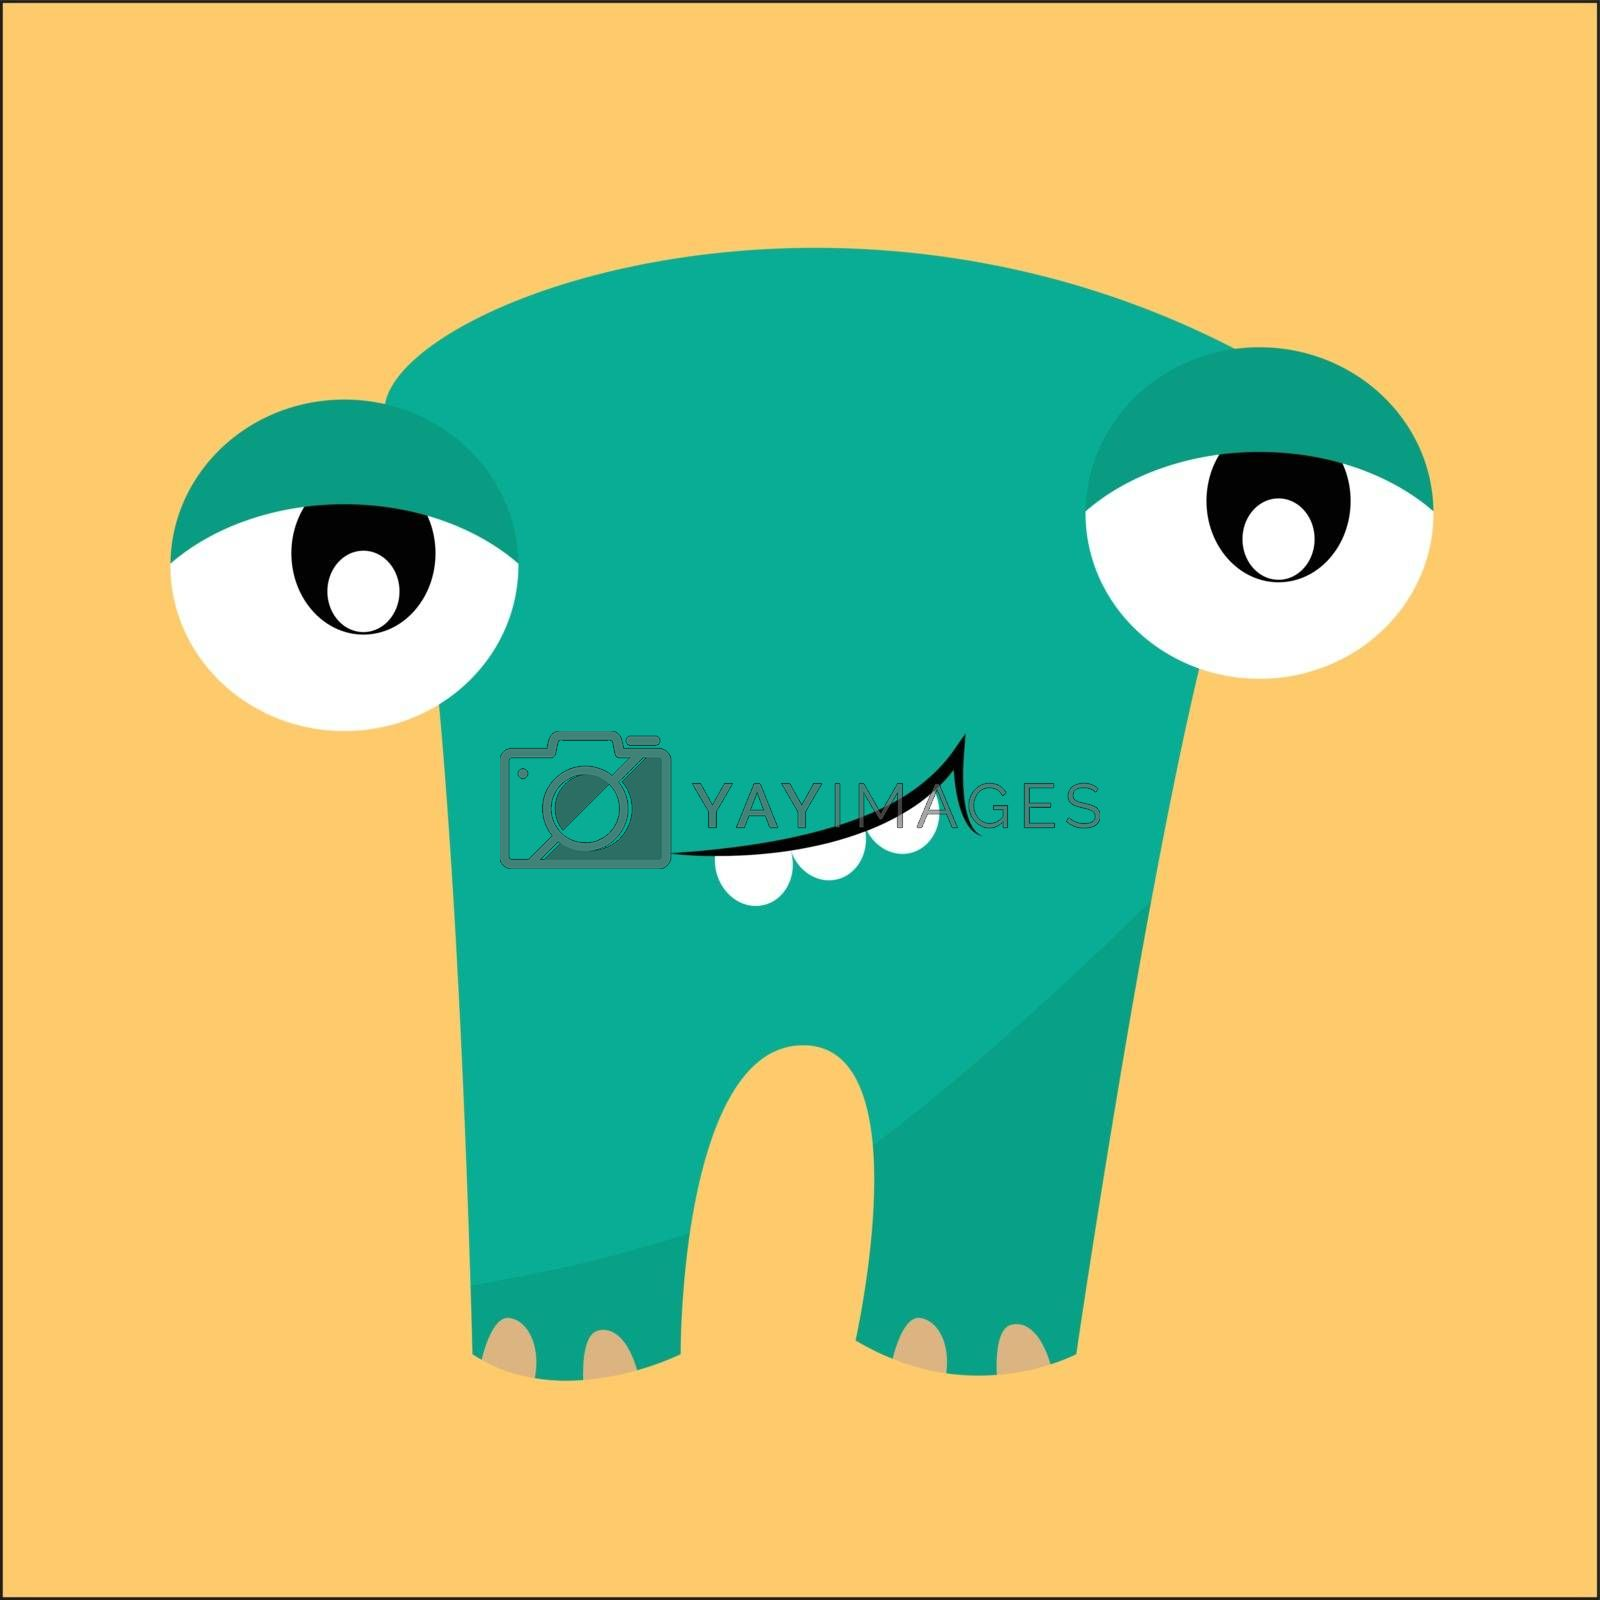 Royalty free image of Clipart of a smiling blue-colored monster set on isolated yellow by Morphart